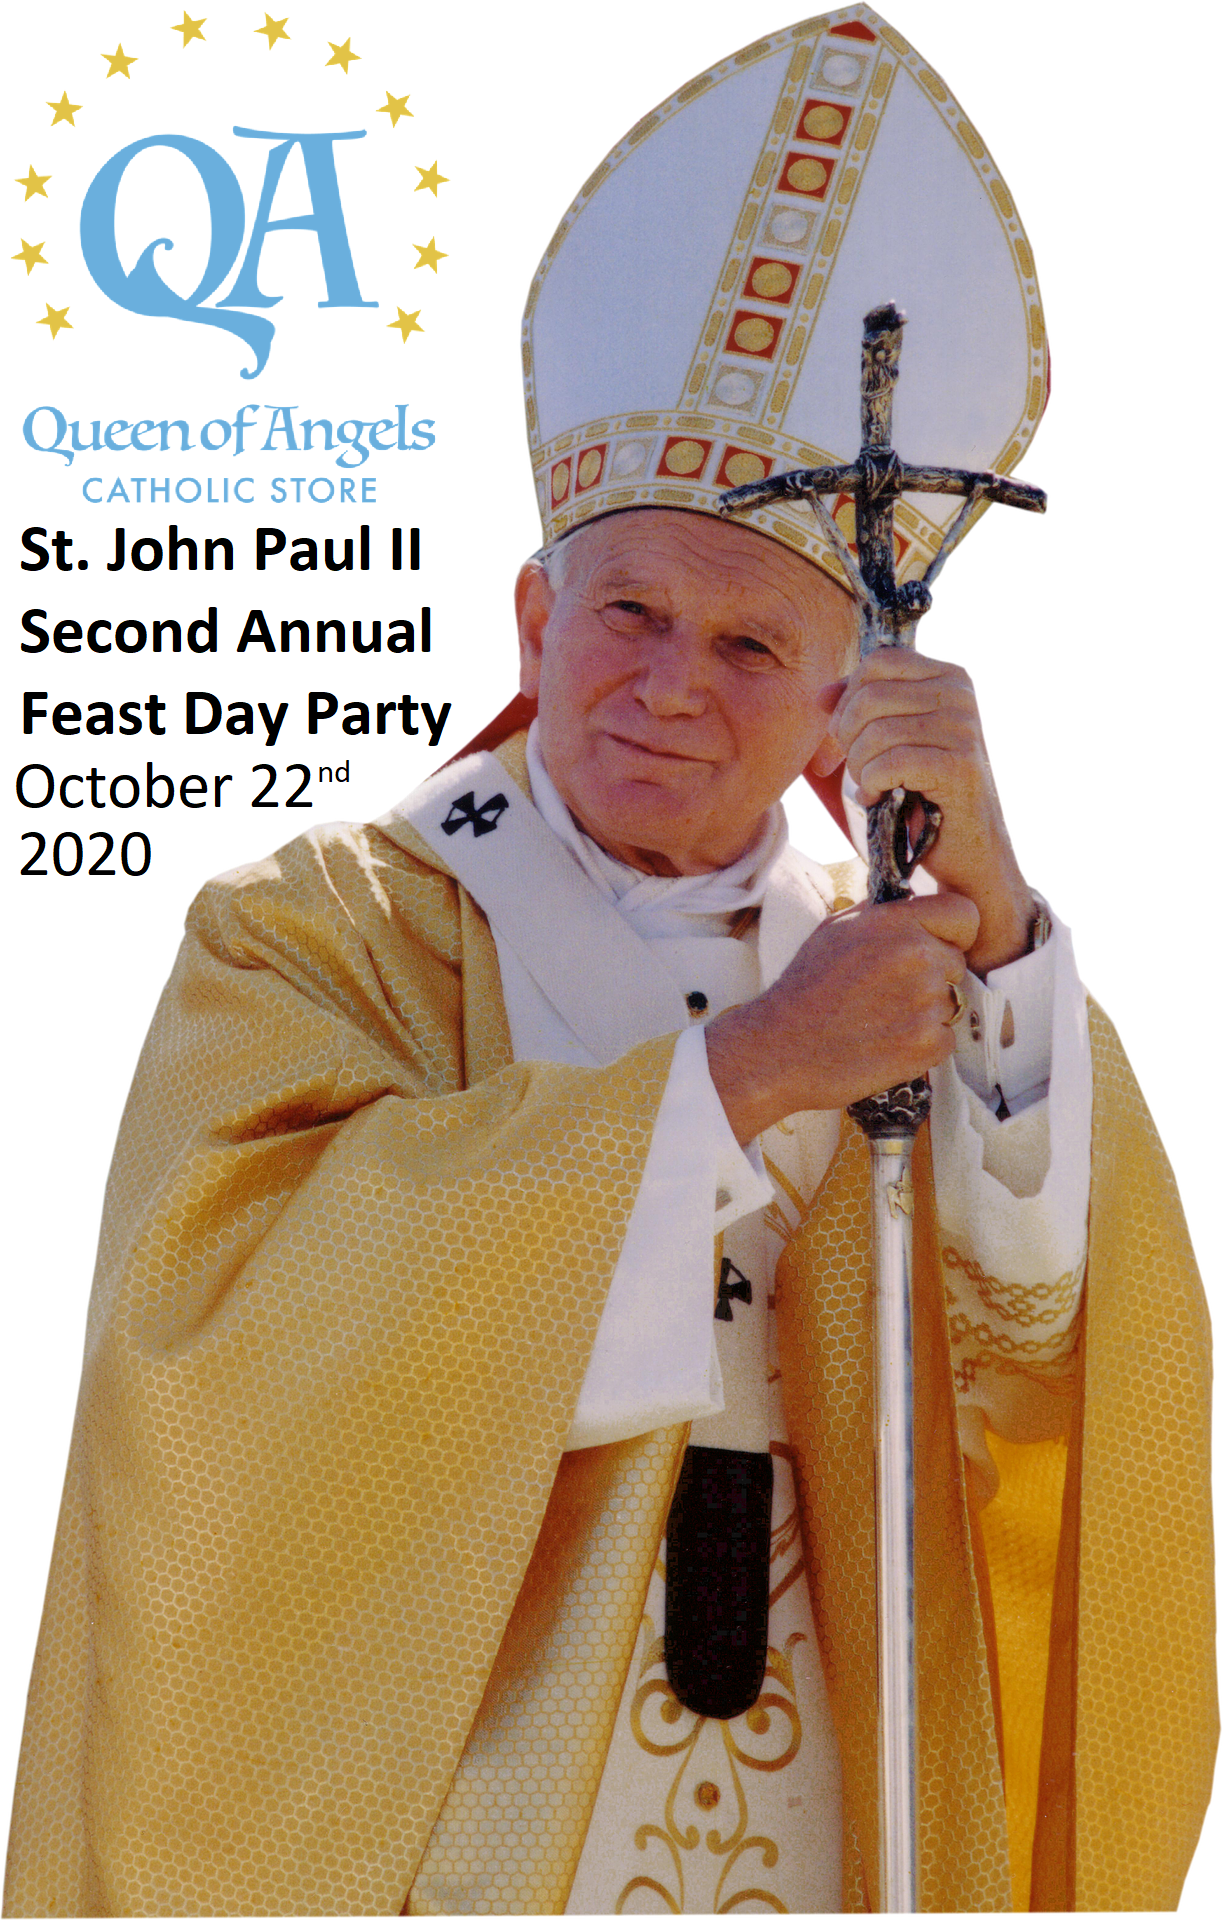 St. John Paul II Second Annual Feast Day Party